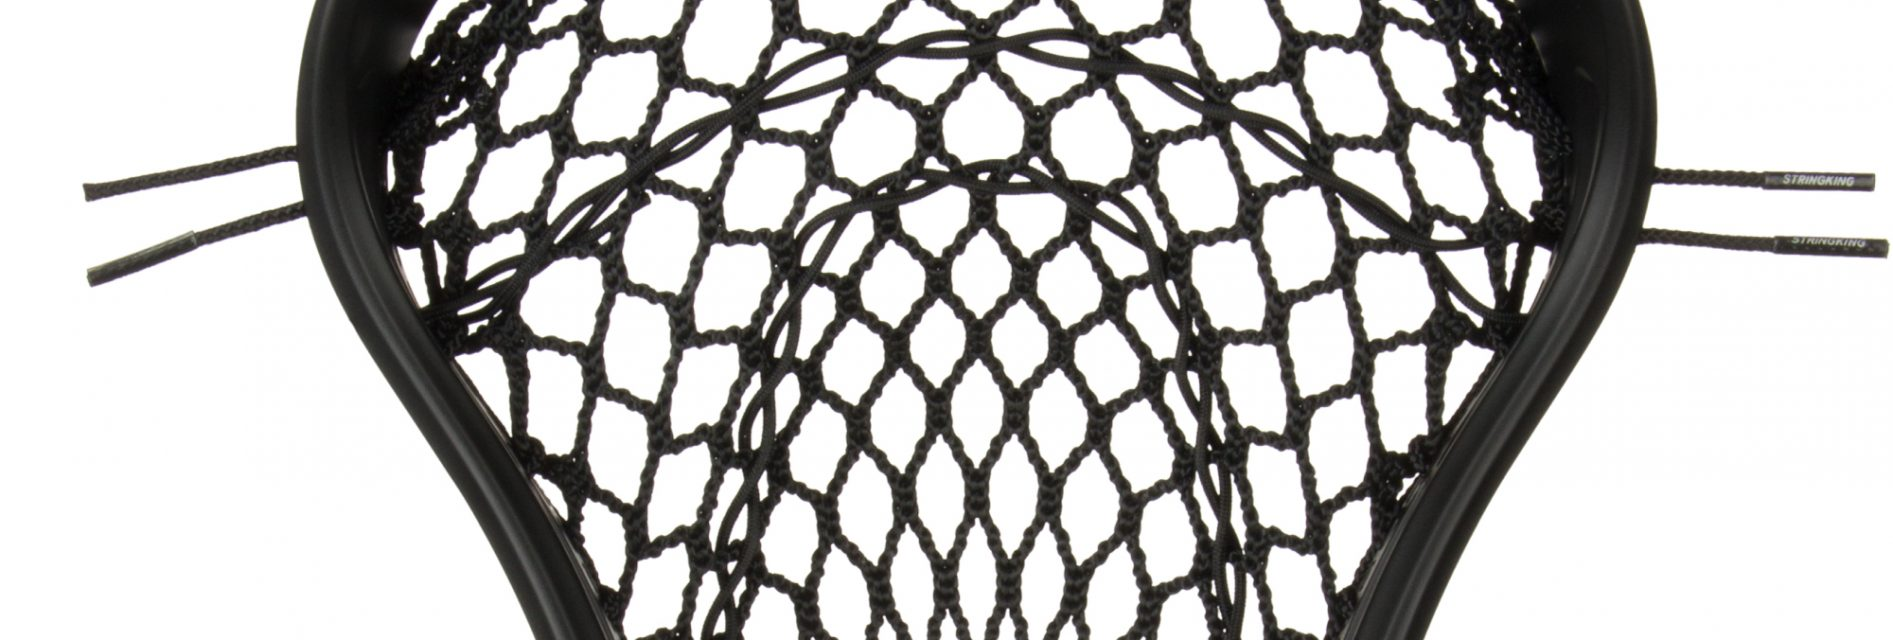 StringKing Women's Type W Lacrosse Mesh Head Face Channel Feature Black